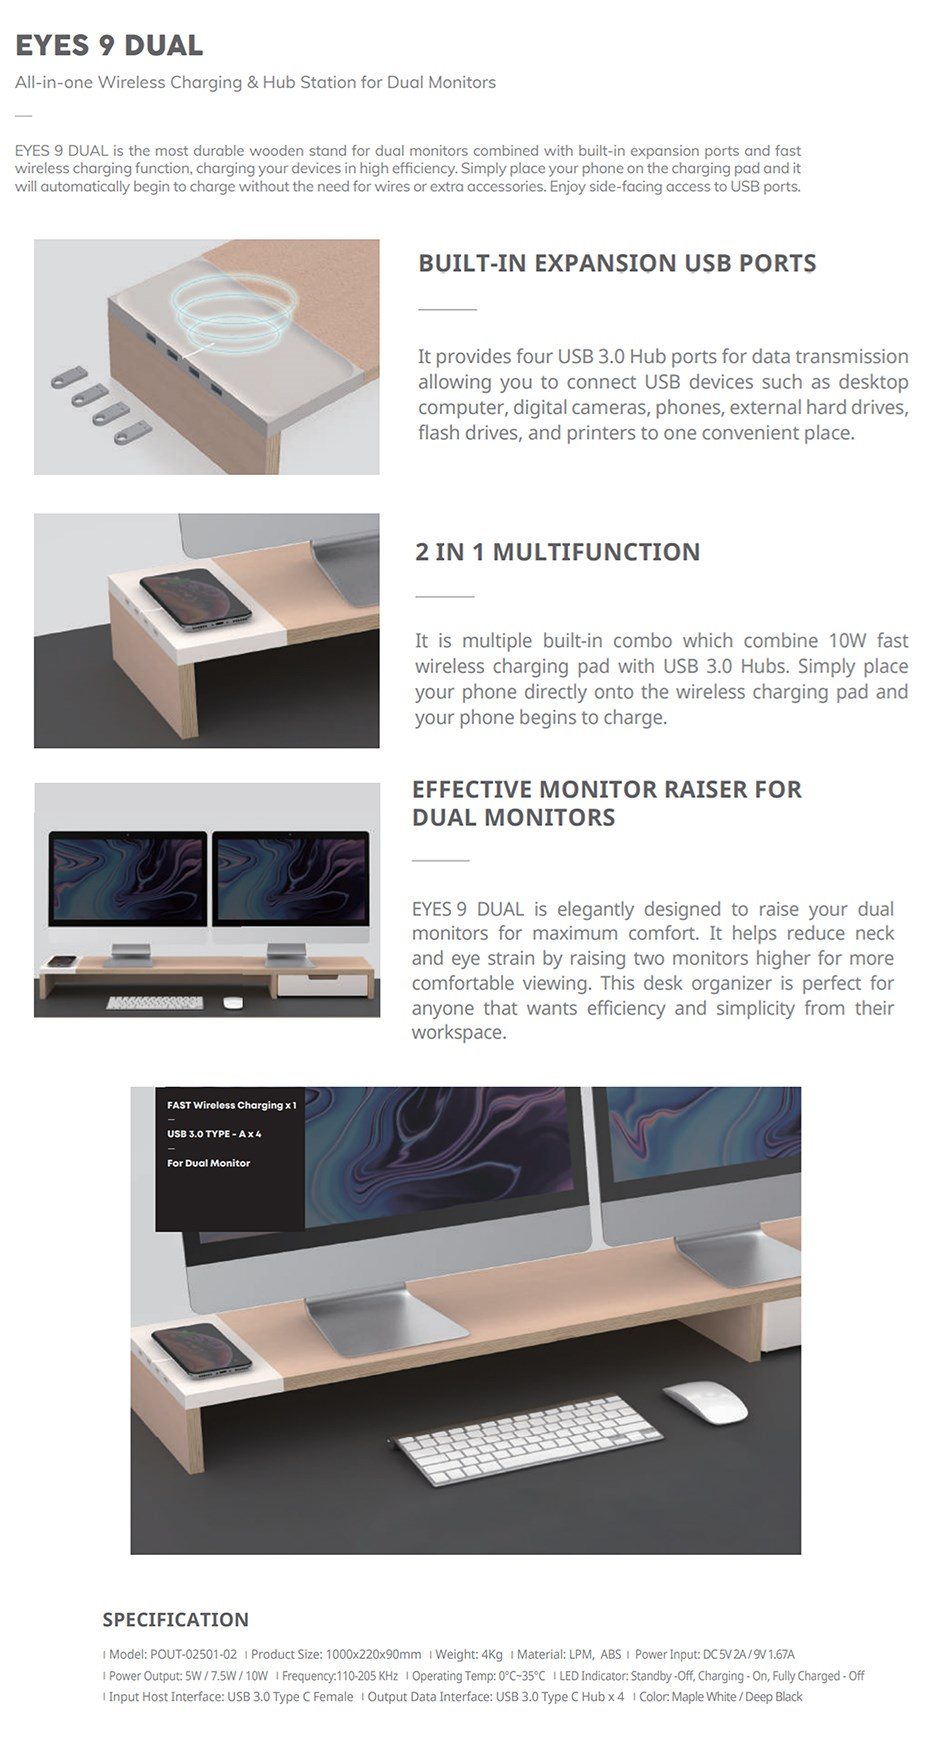 Pout Eyes9 All-In-One Wireless Charging & Hub Stand for Dual Monitors - White - Overview 1